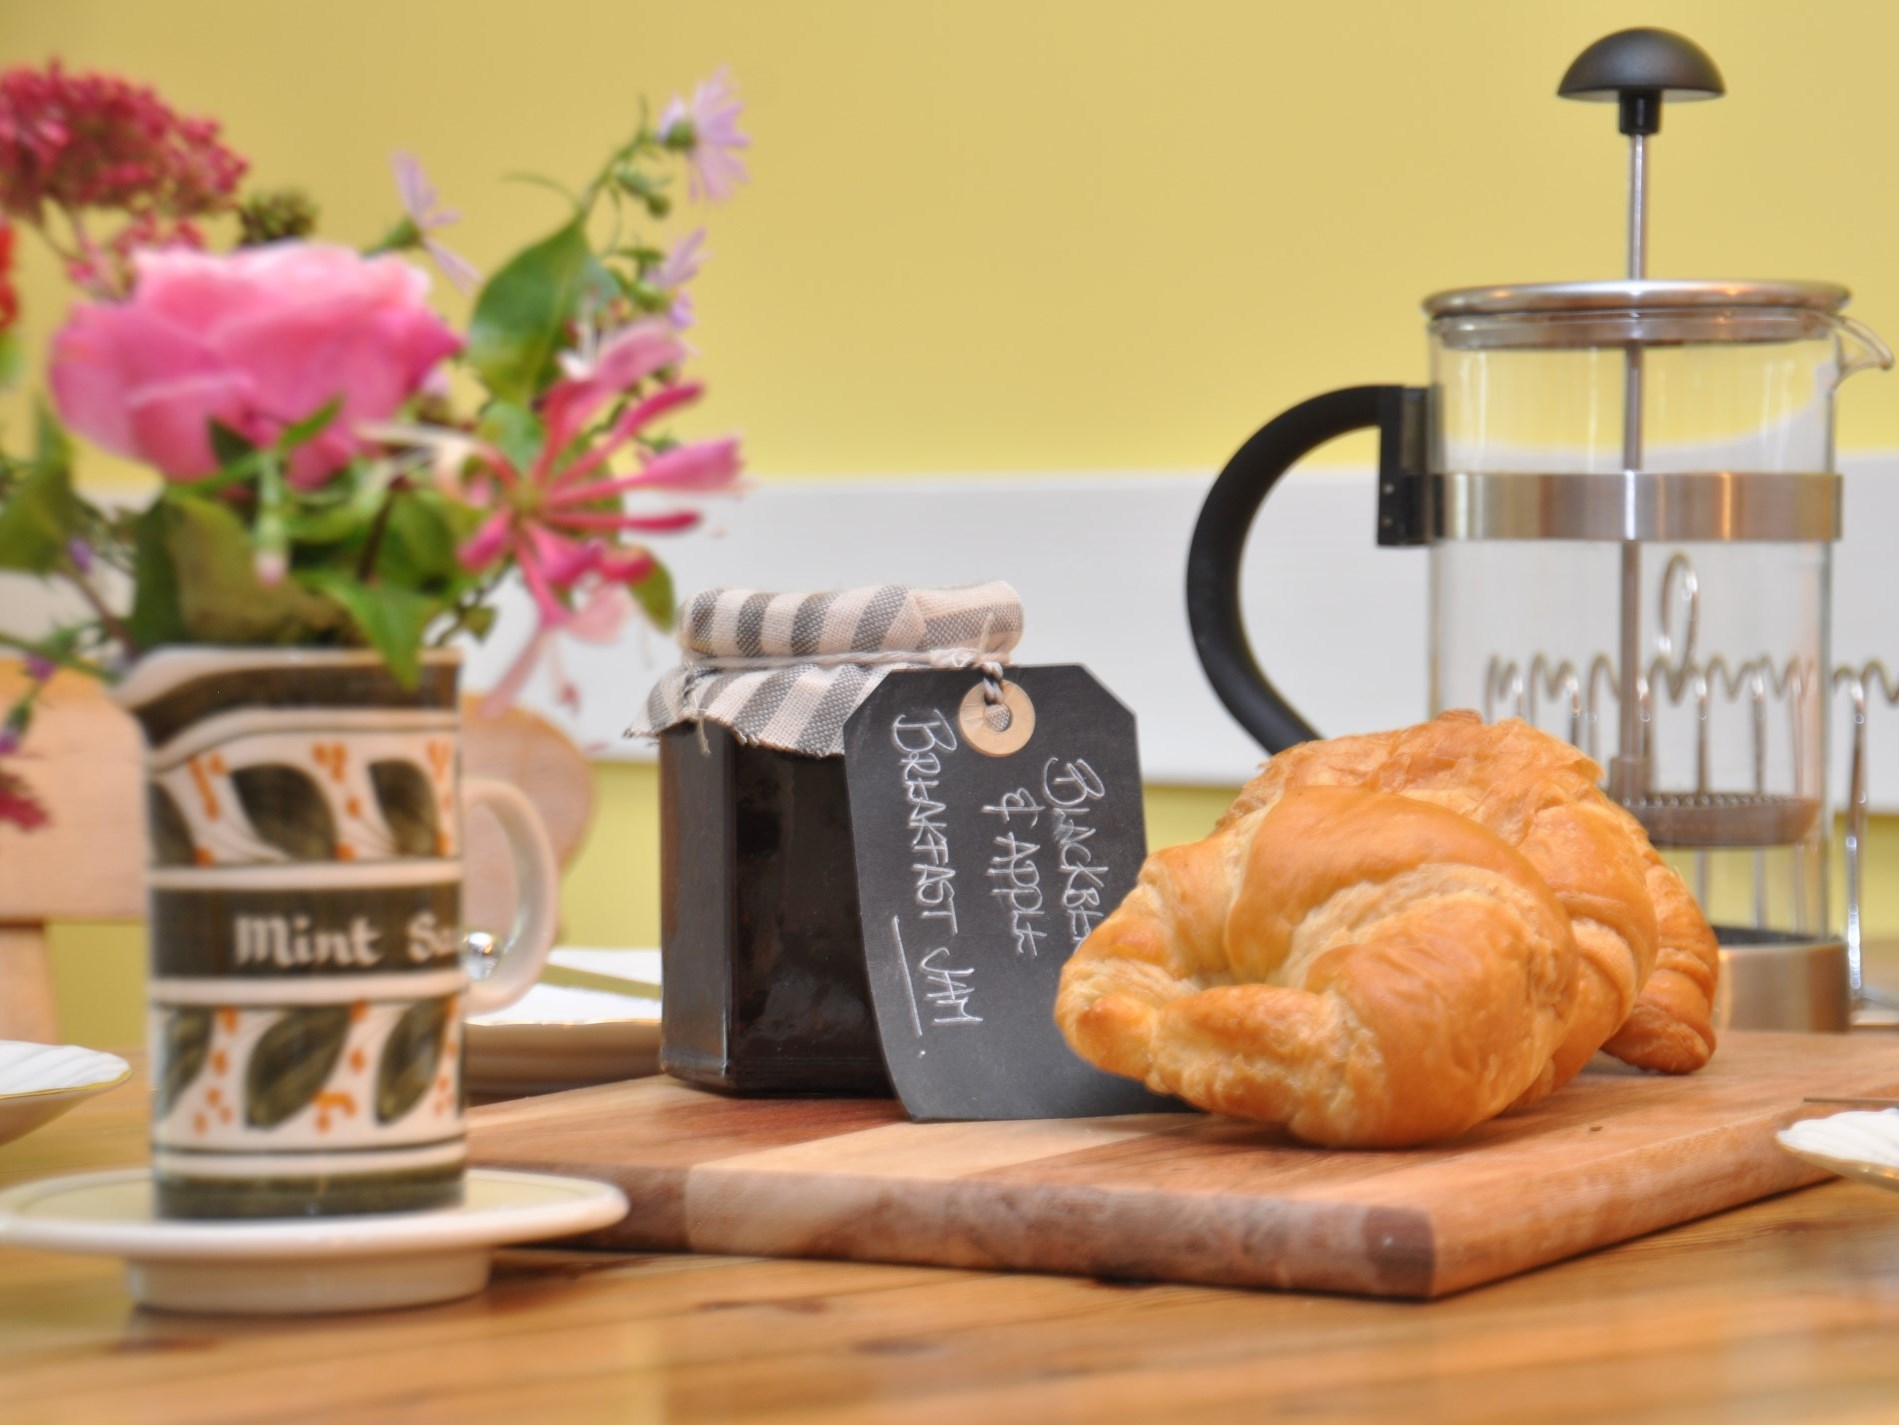 Wake up to coffee and croissants